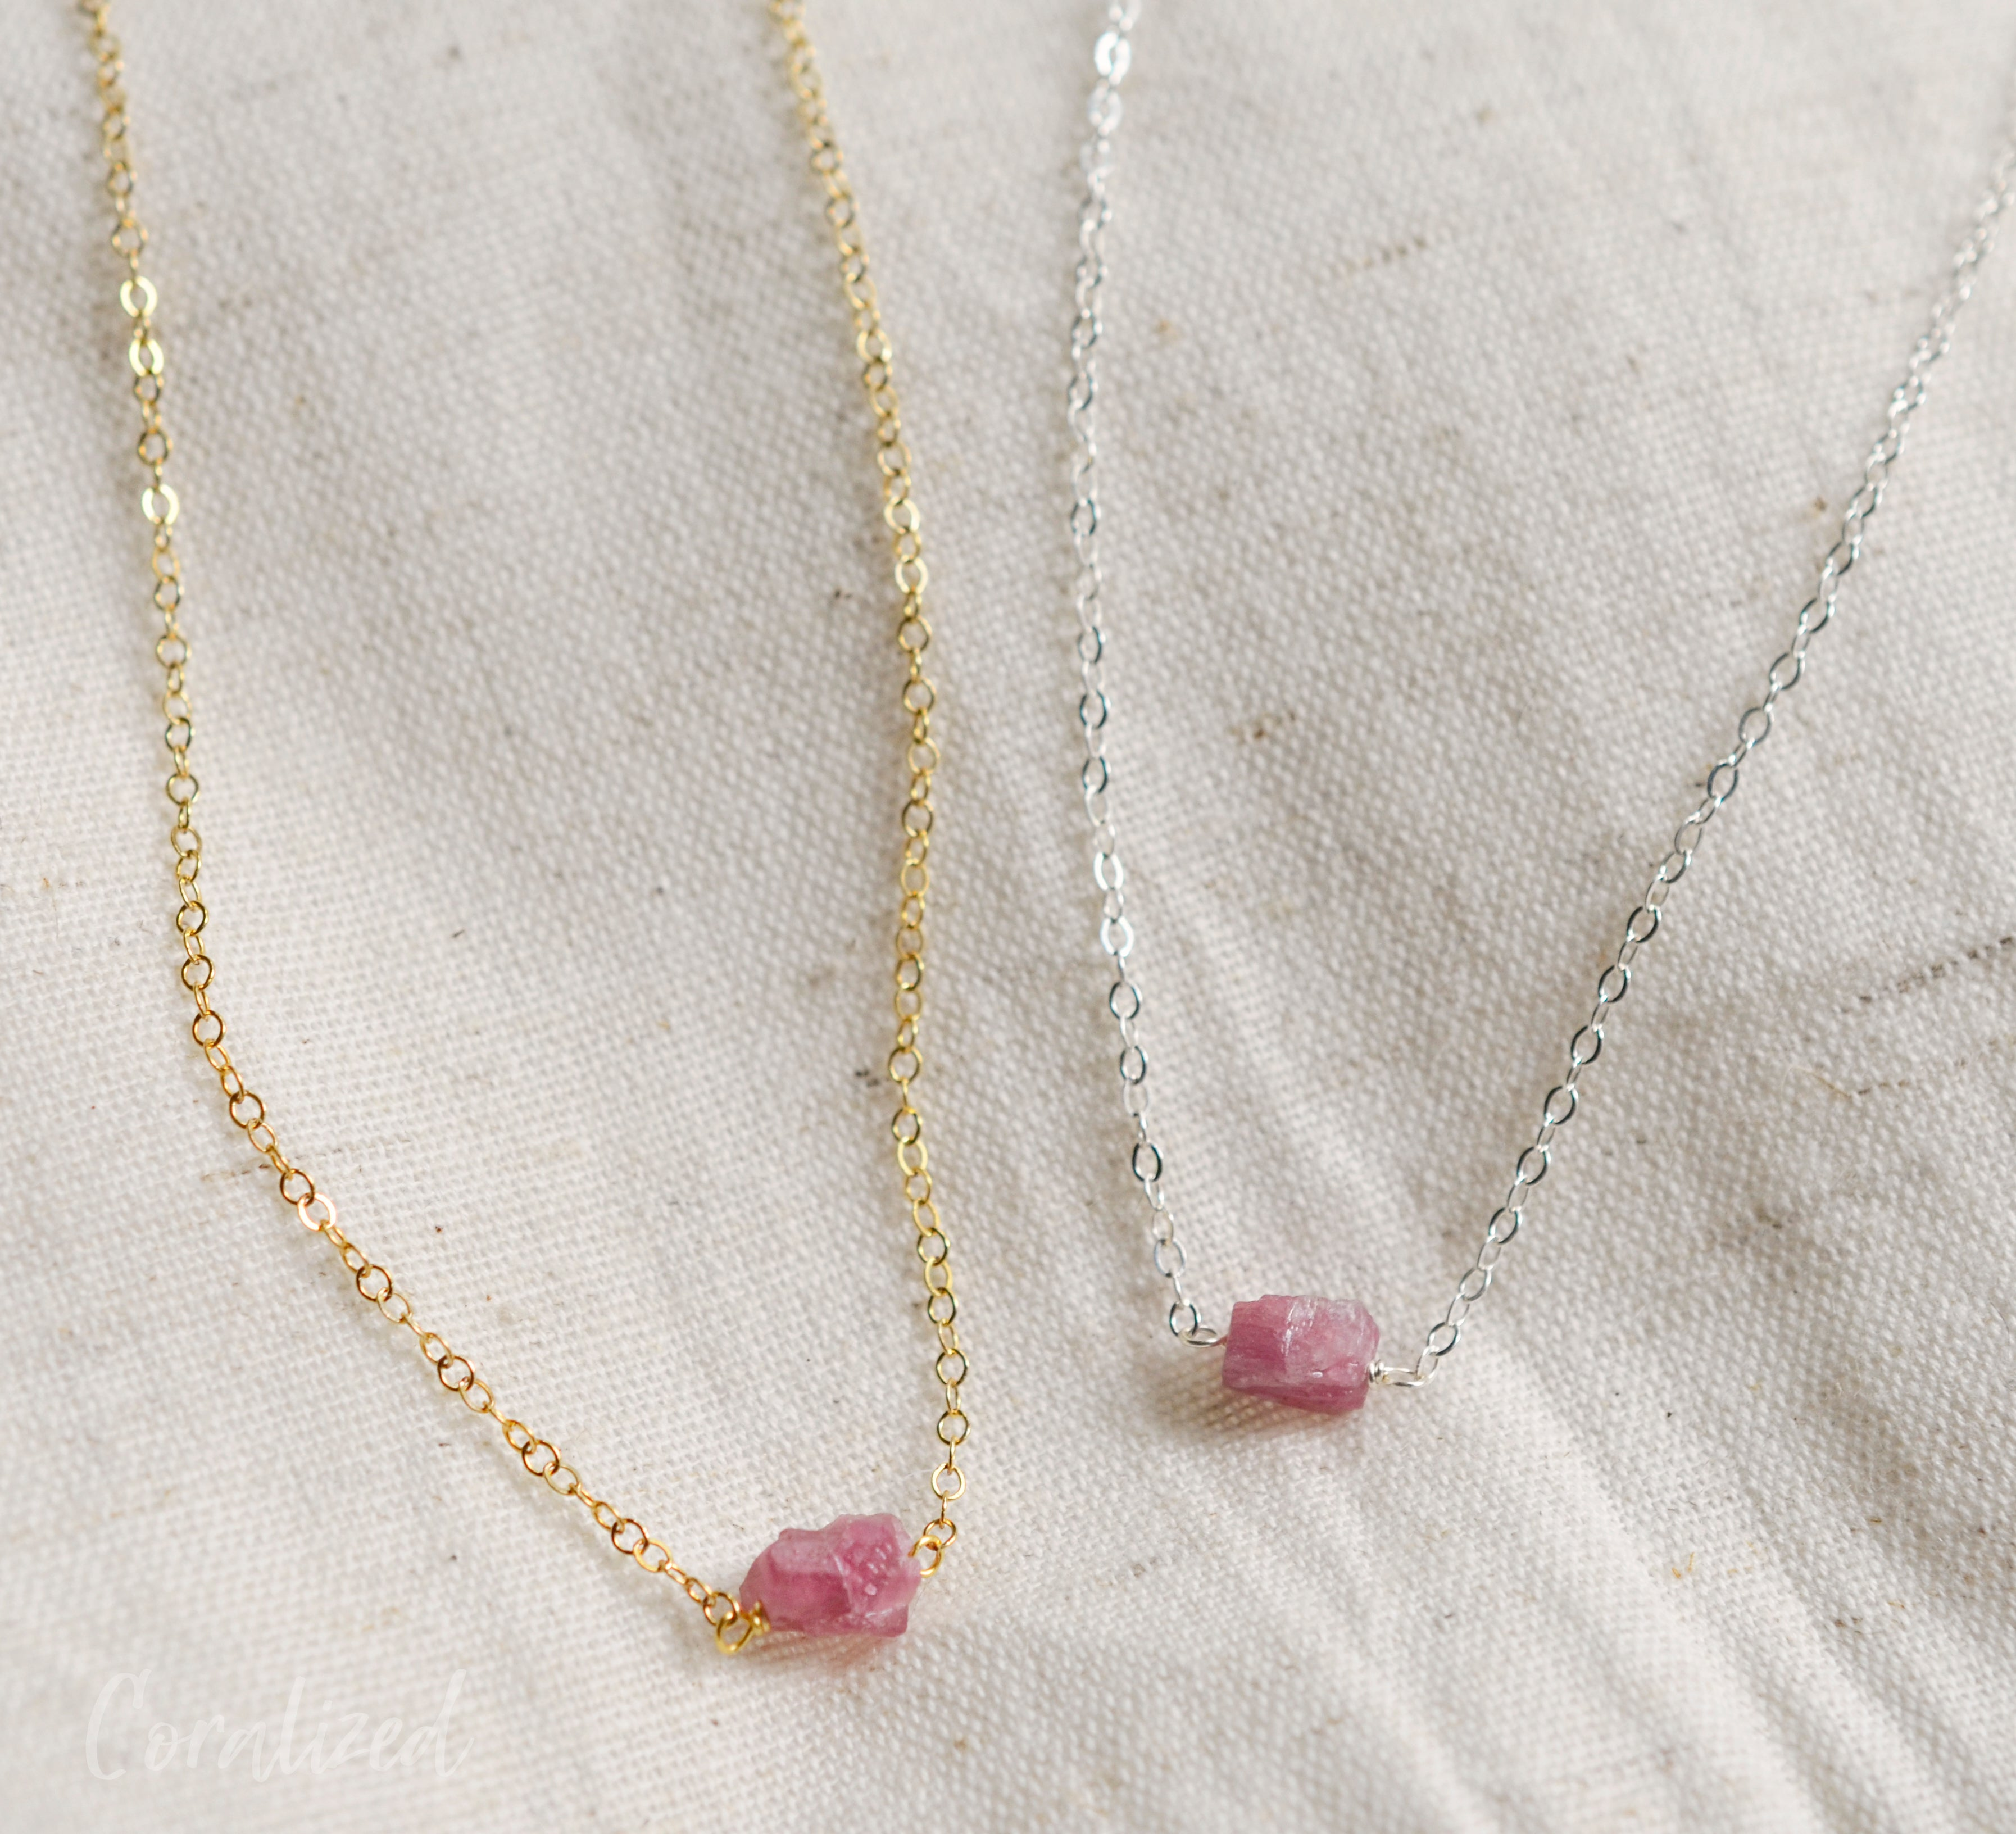 Raw Pink Tourmaline Necklace